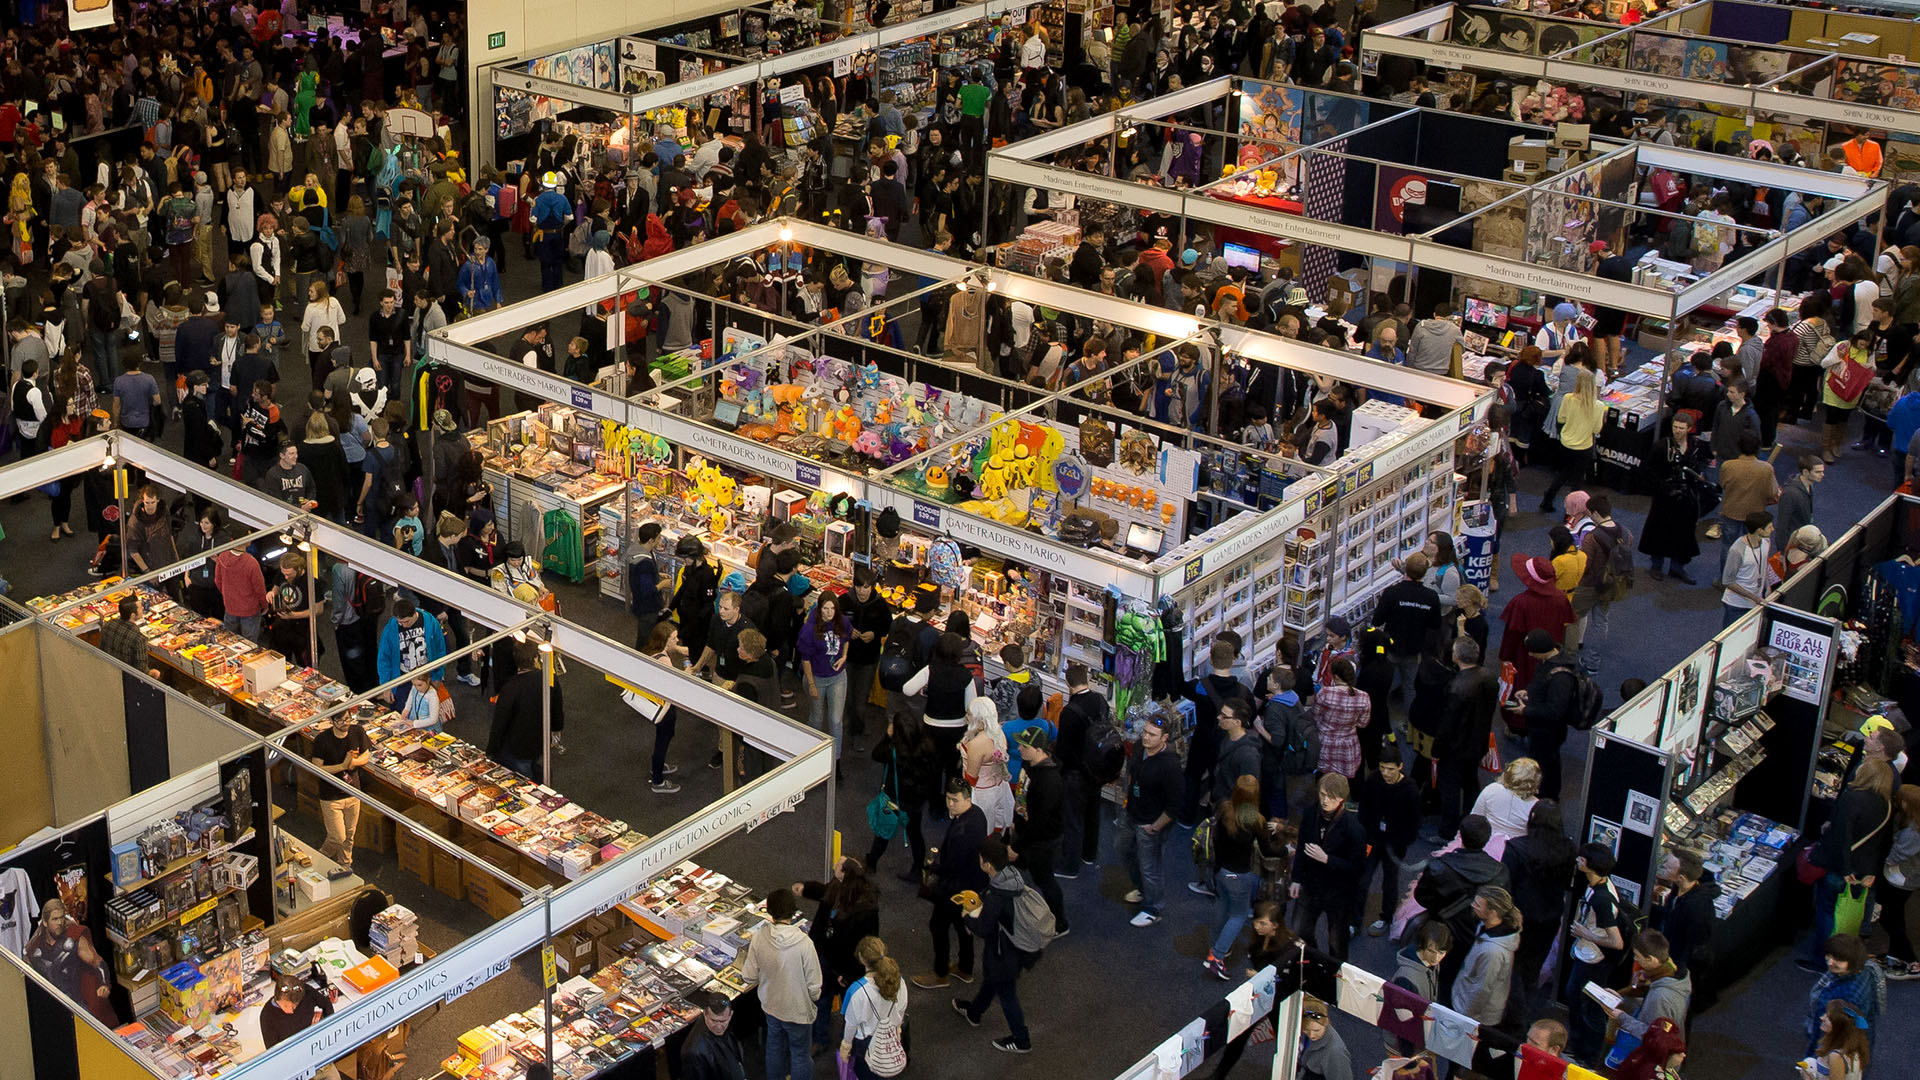 The busy crowds of the Exhibitor Hall.